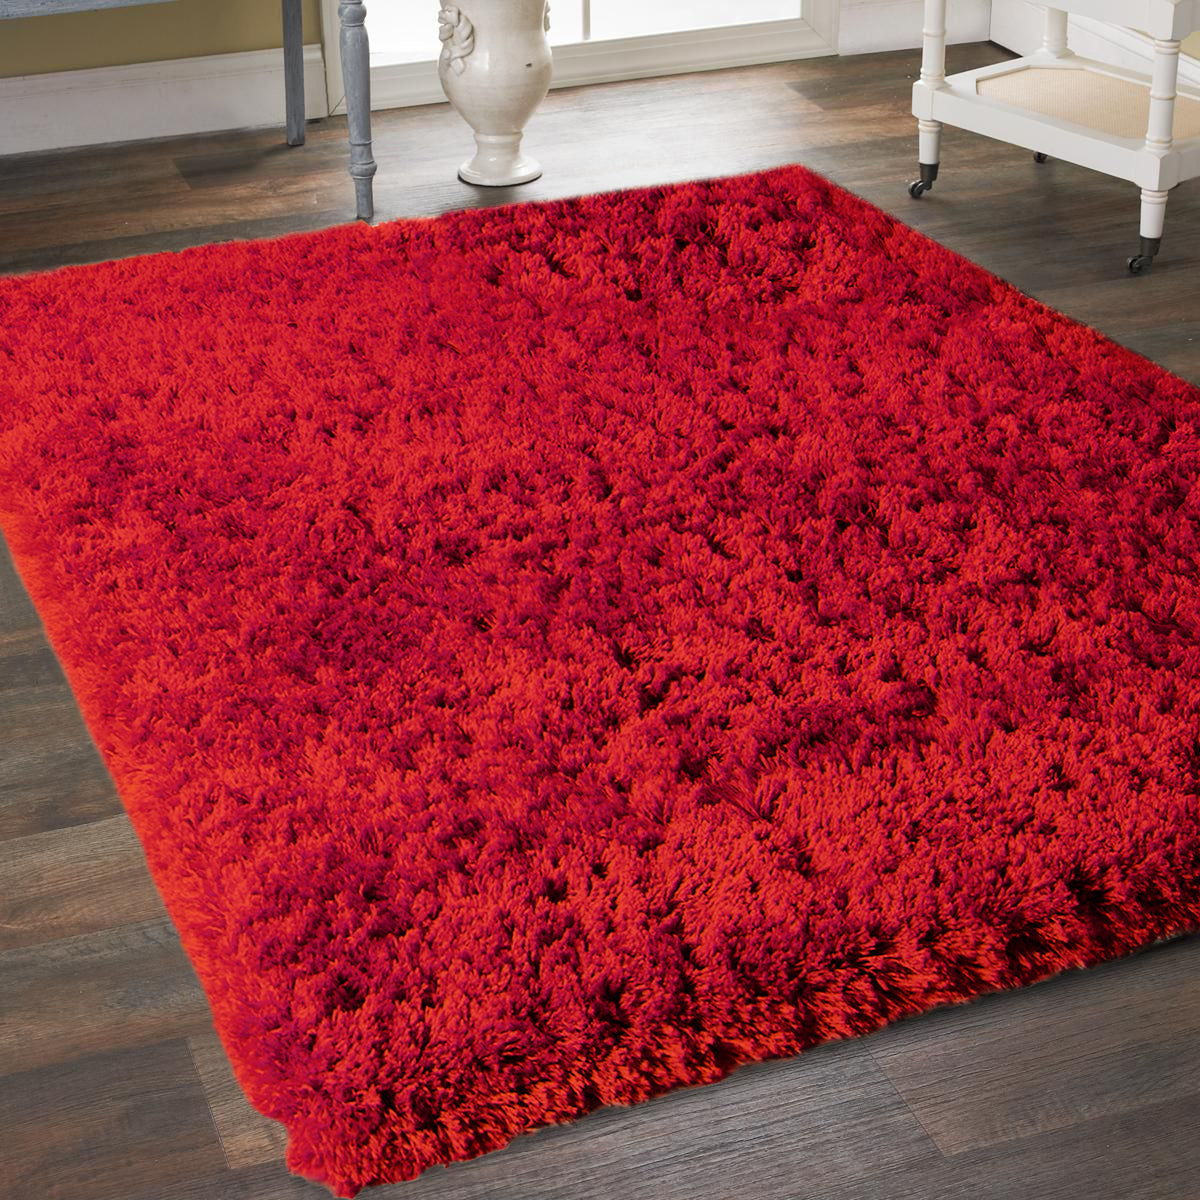 8' x 10' Red Super Soft Thick Plush Pile Cozy Modern Shaggy Shag Microfiber Area Rug